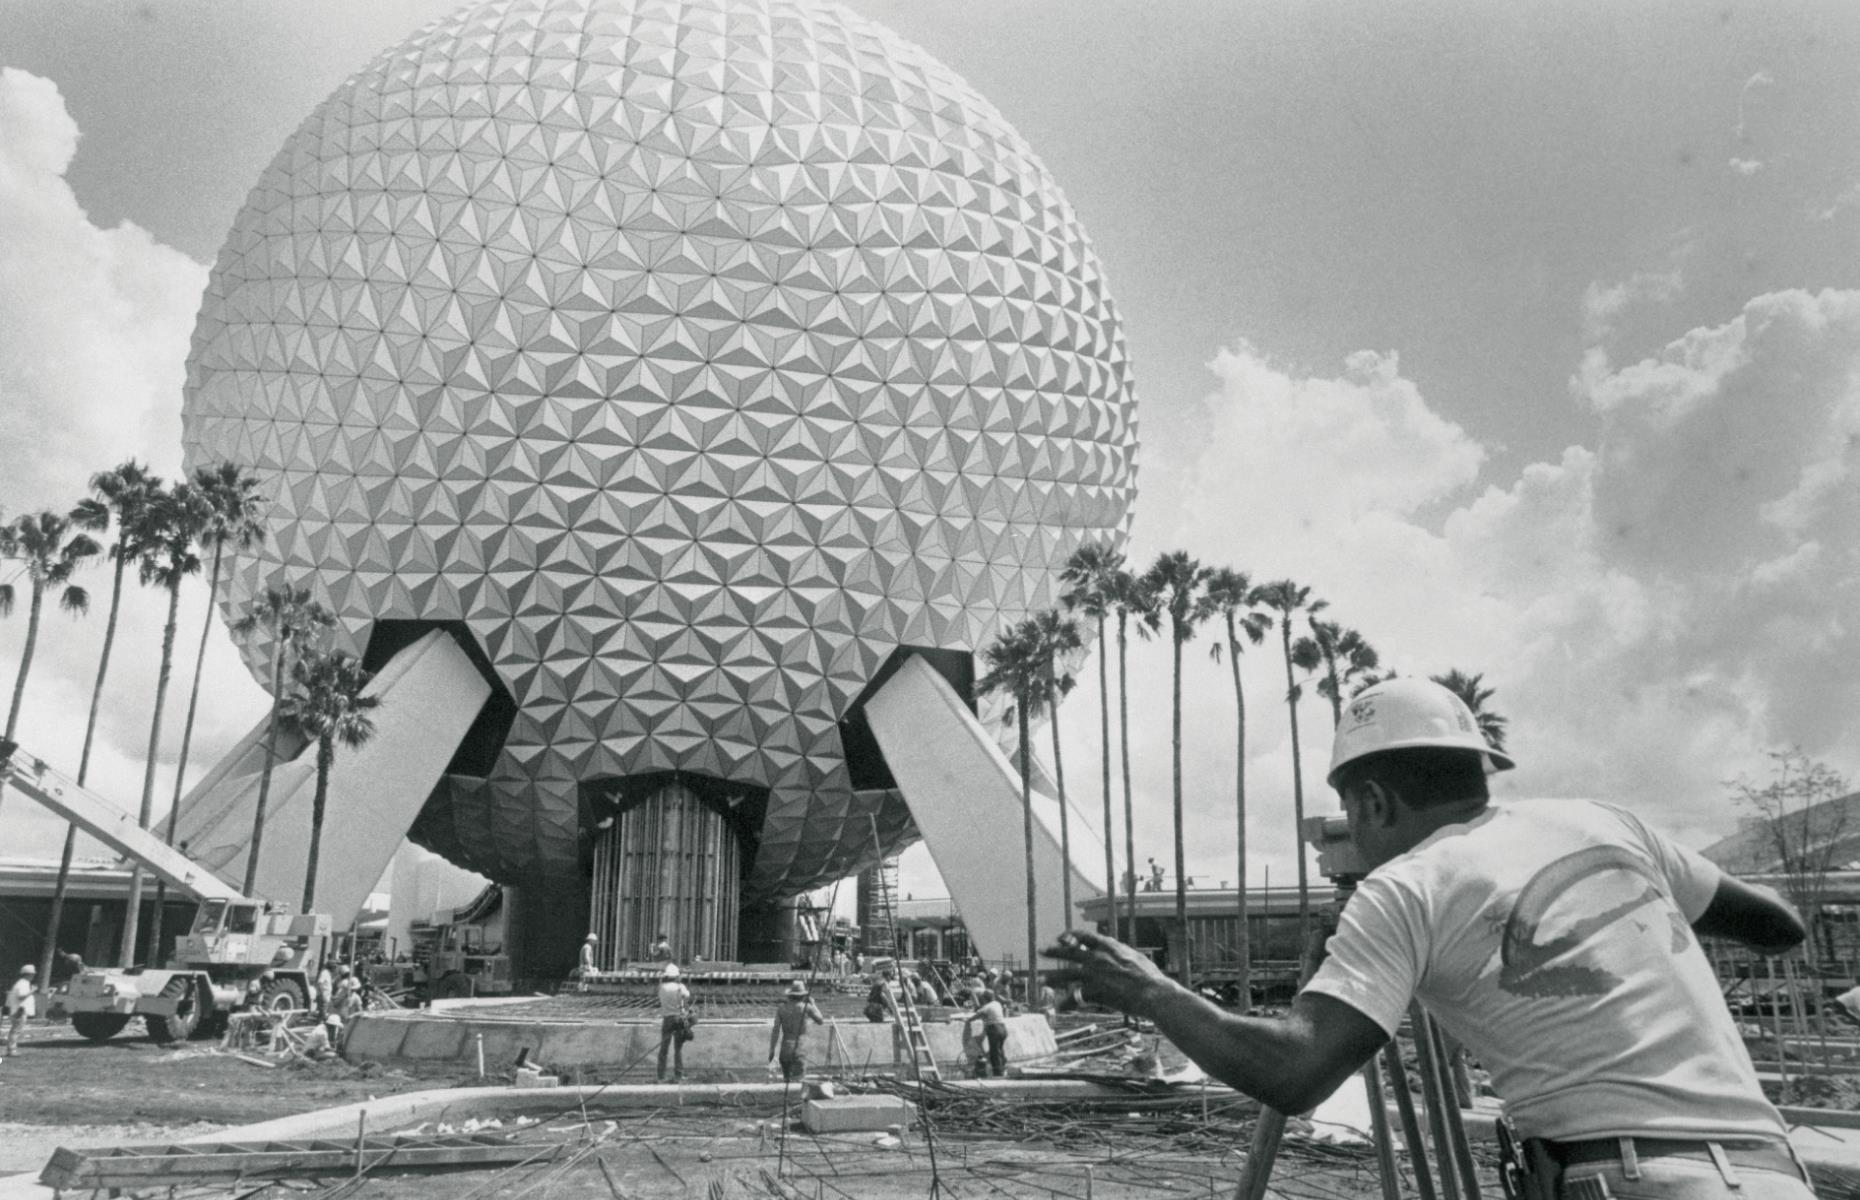 """Slide 47 of 51: Walt Disney World in Florida opened on 1 October 1971 and greeted 10,000 eager fans on its first day. Initially, the resort was made up of six individually themed lands: Main Street USA, Adventureland, Fantasyland, Frontierland, Liberty Square and Tomorrowland. In 1982, Epcot (pictured here under construction) opened, and its name initially stood for """"Experimental Prototype Community of Tomorrow"""". Walt Disney World usuallyattracts more than 52 million people a year, making it the most visited vacation resort in the world."""